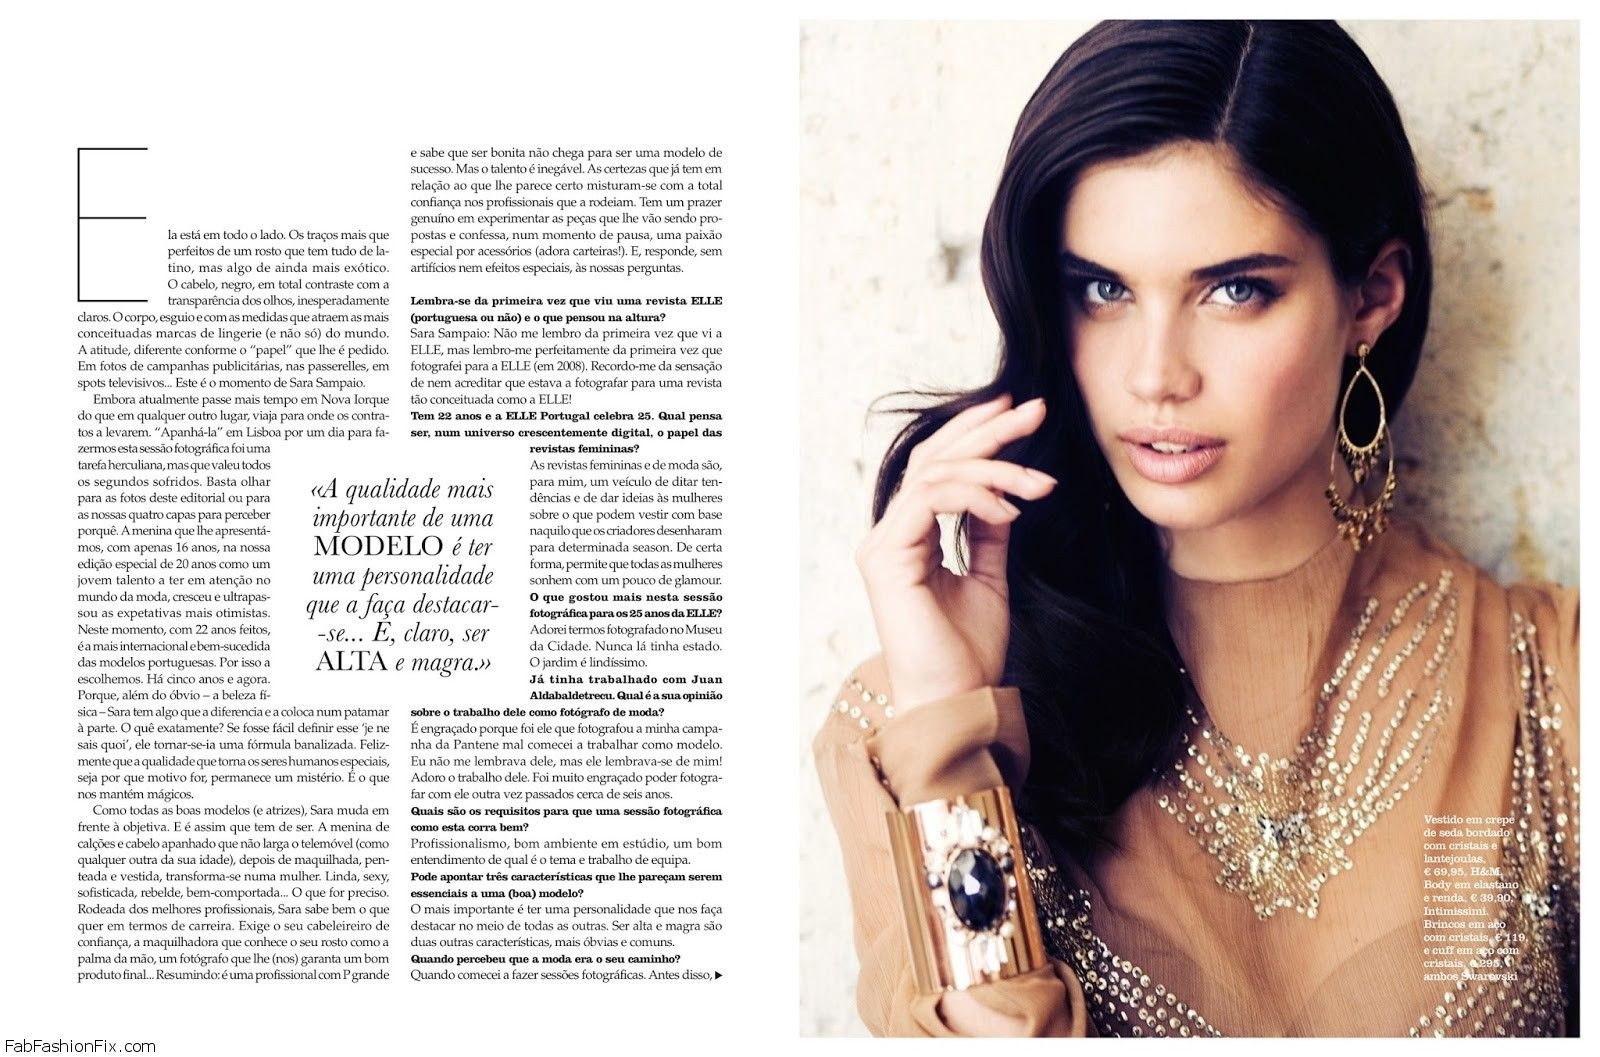 fashion_scans_remastered-sara_sampaio-elle_portugal-october_2013-scanned_by_vampirehorde-hq-6